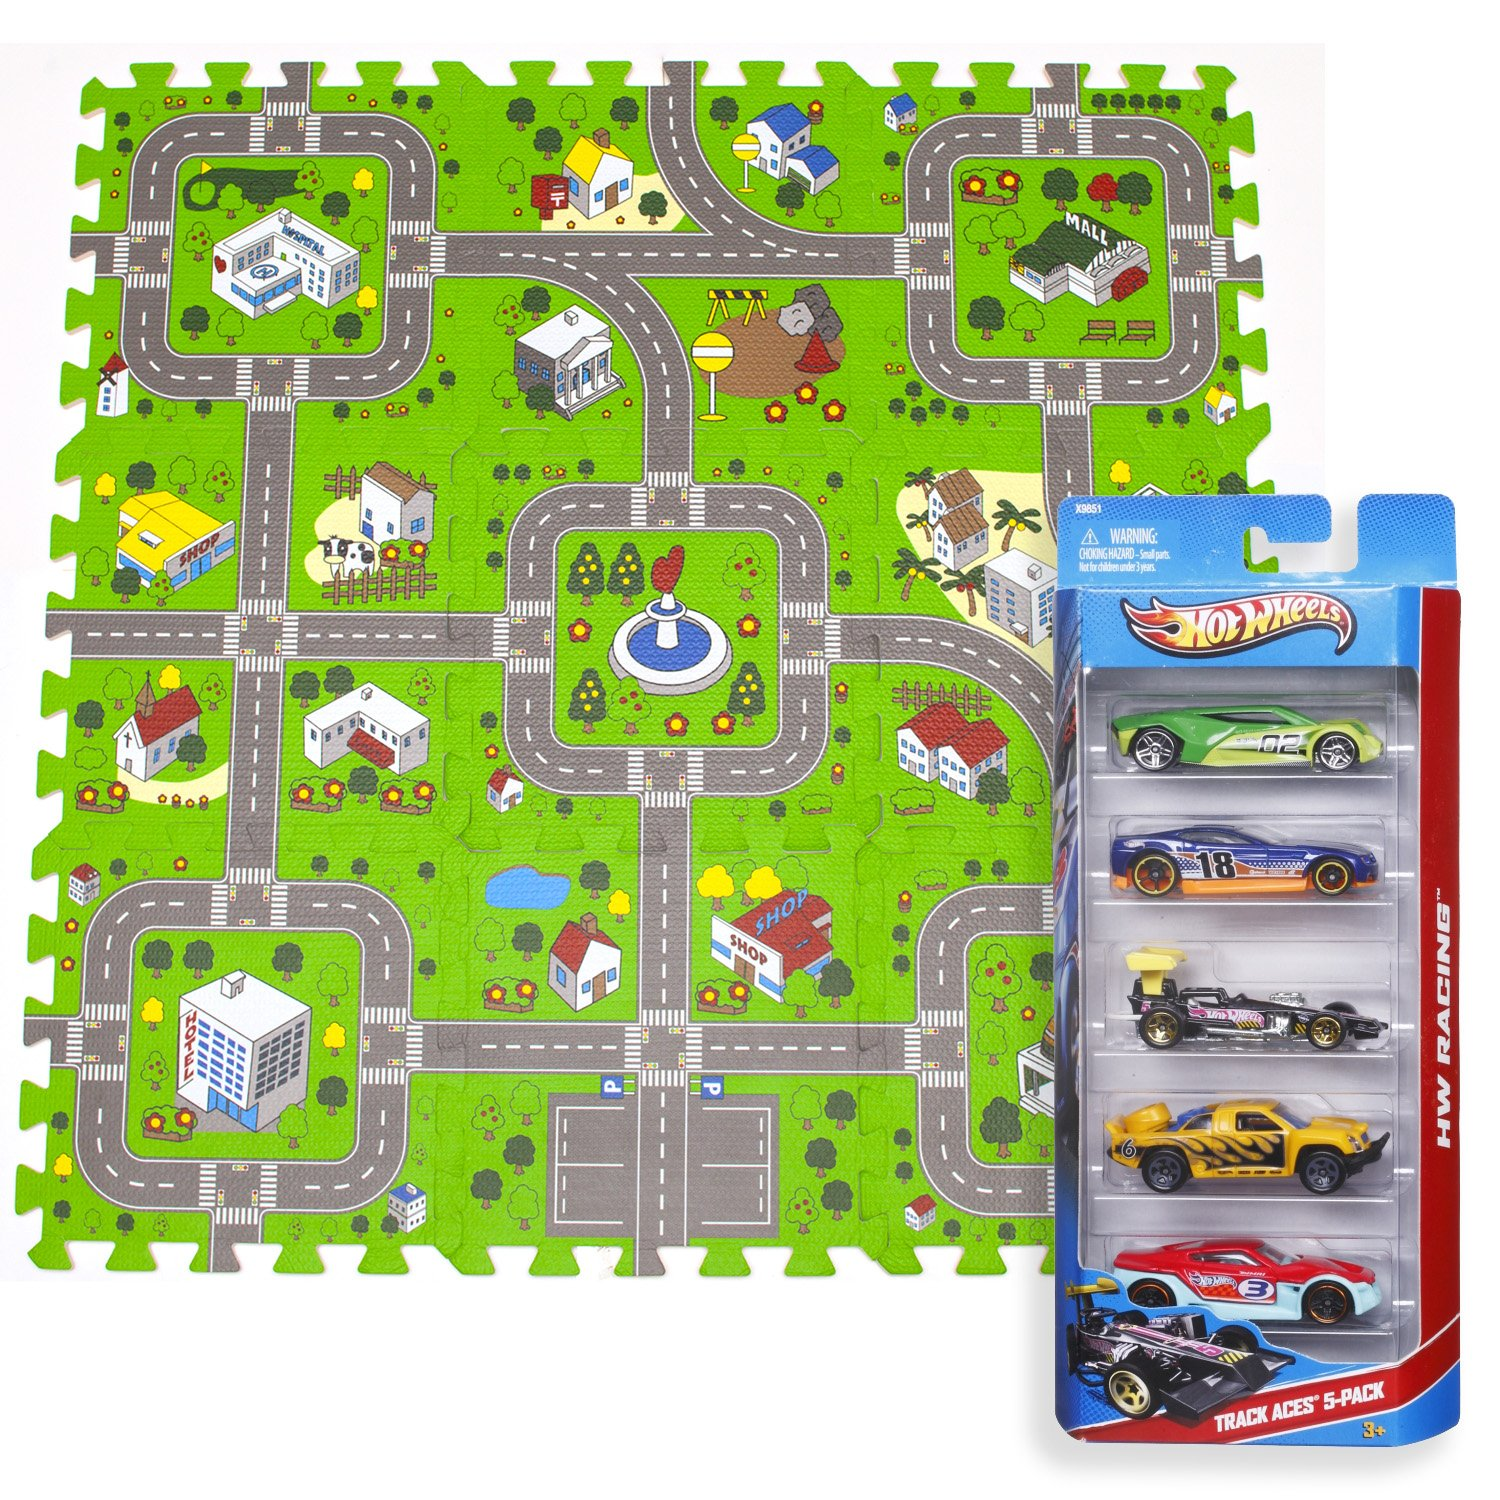 Exultimate Play Mat Road Toy Foam Playmat Interlocking Floor Puzzle Road Playroom Mat Interactive Play Set Bundle with Hot Wheels Cars 9 pc Car Set